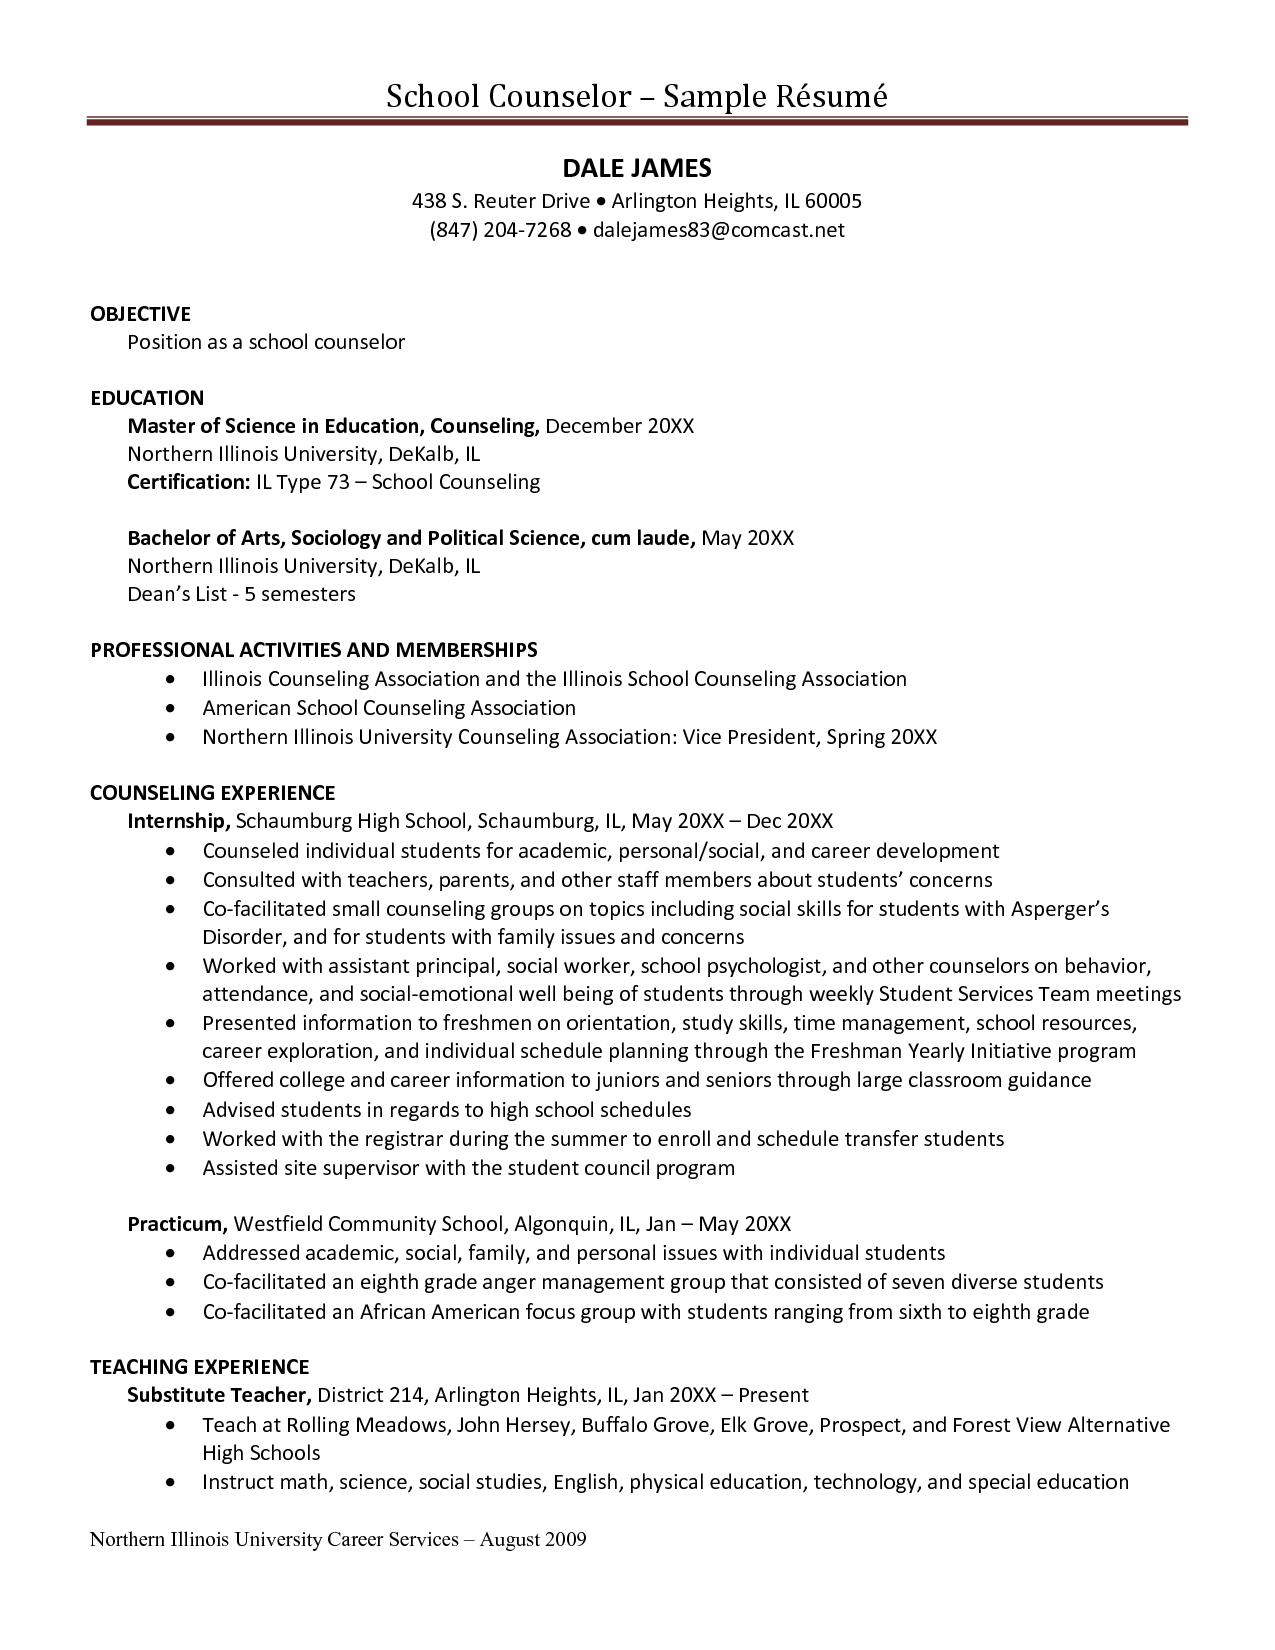 school guidance counselor sample resume marine officer sample resume